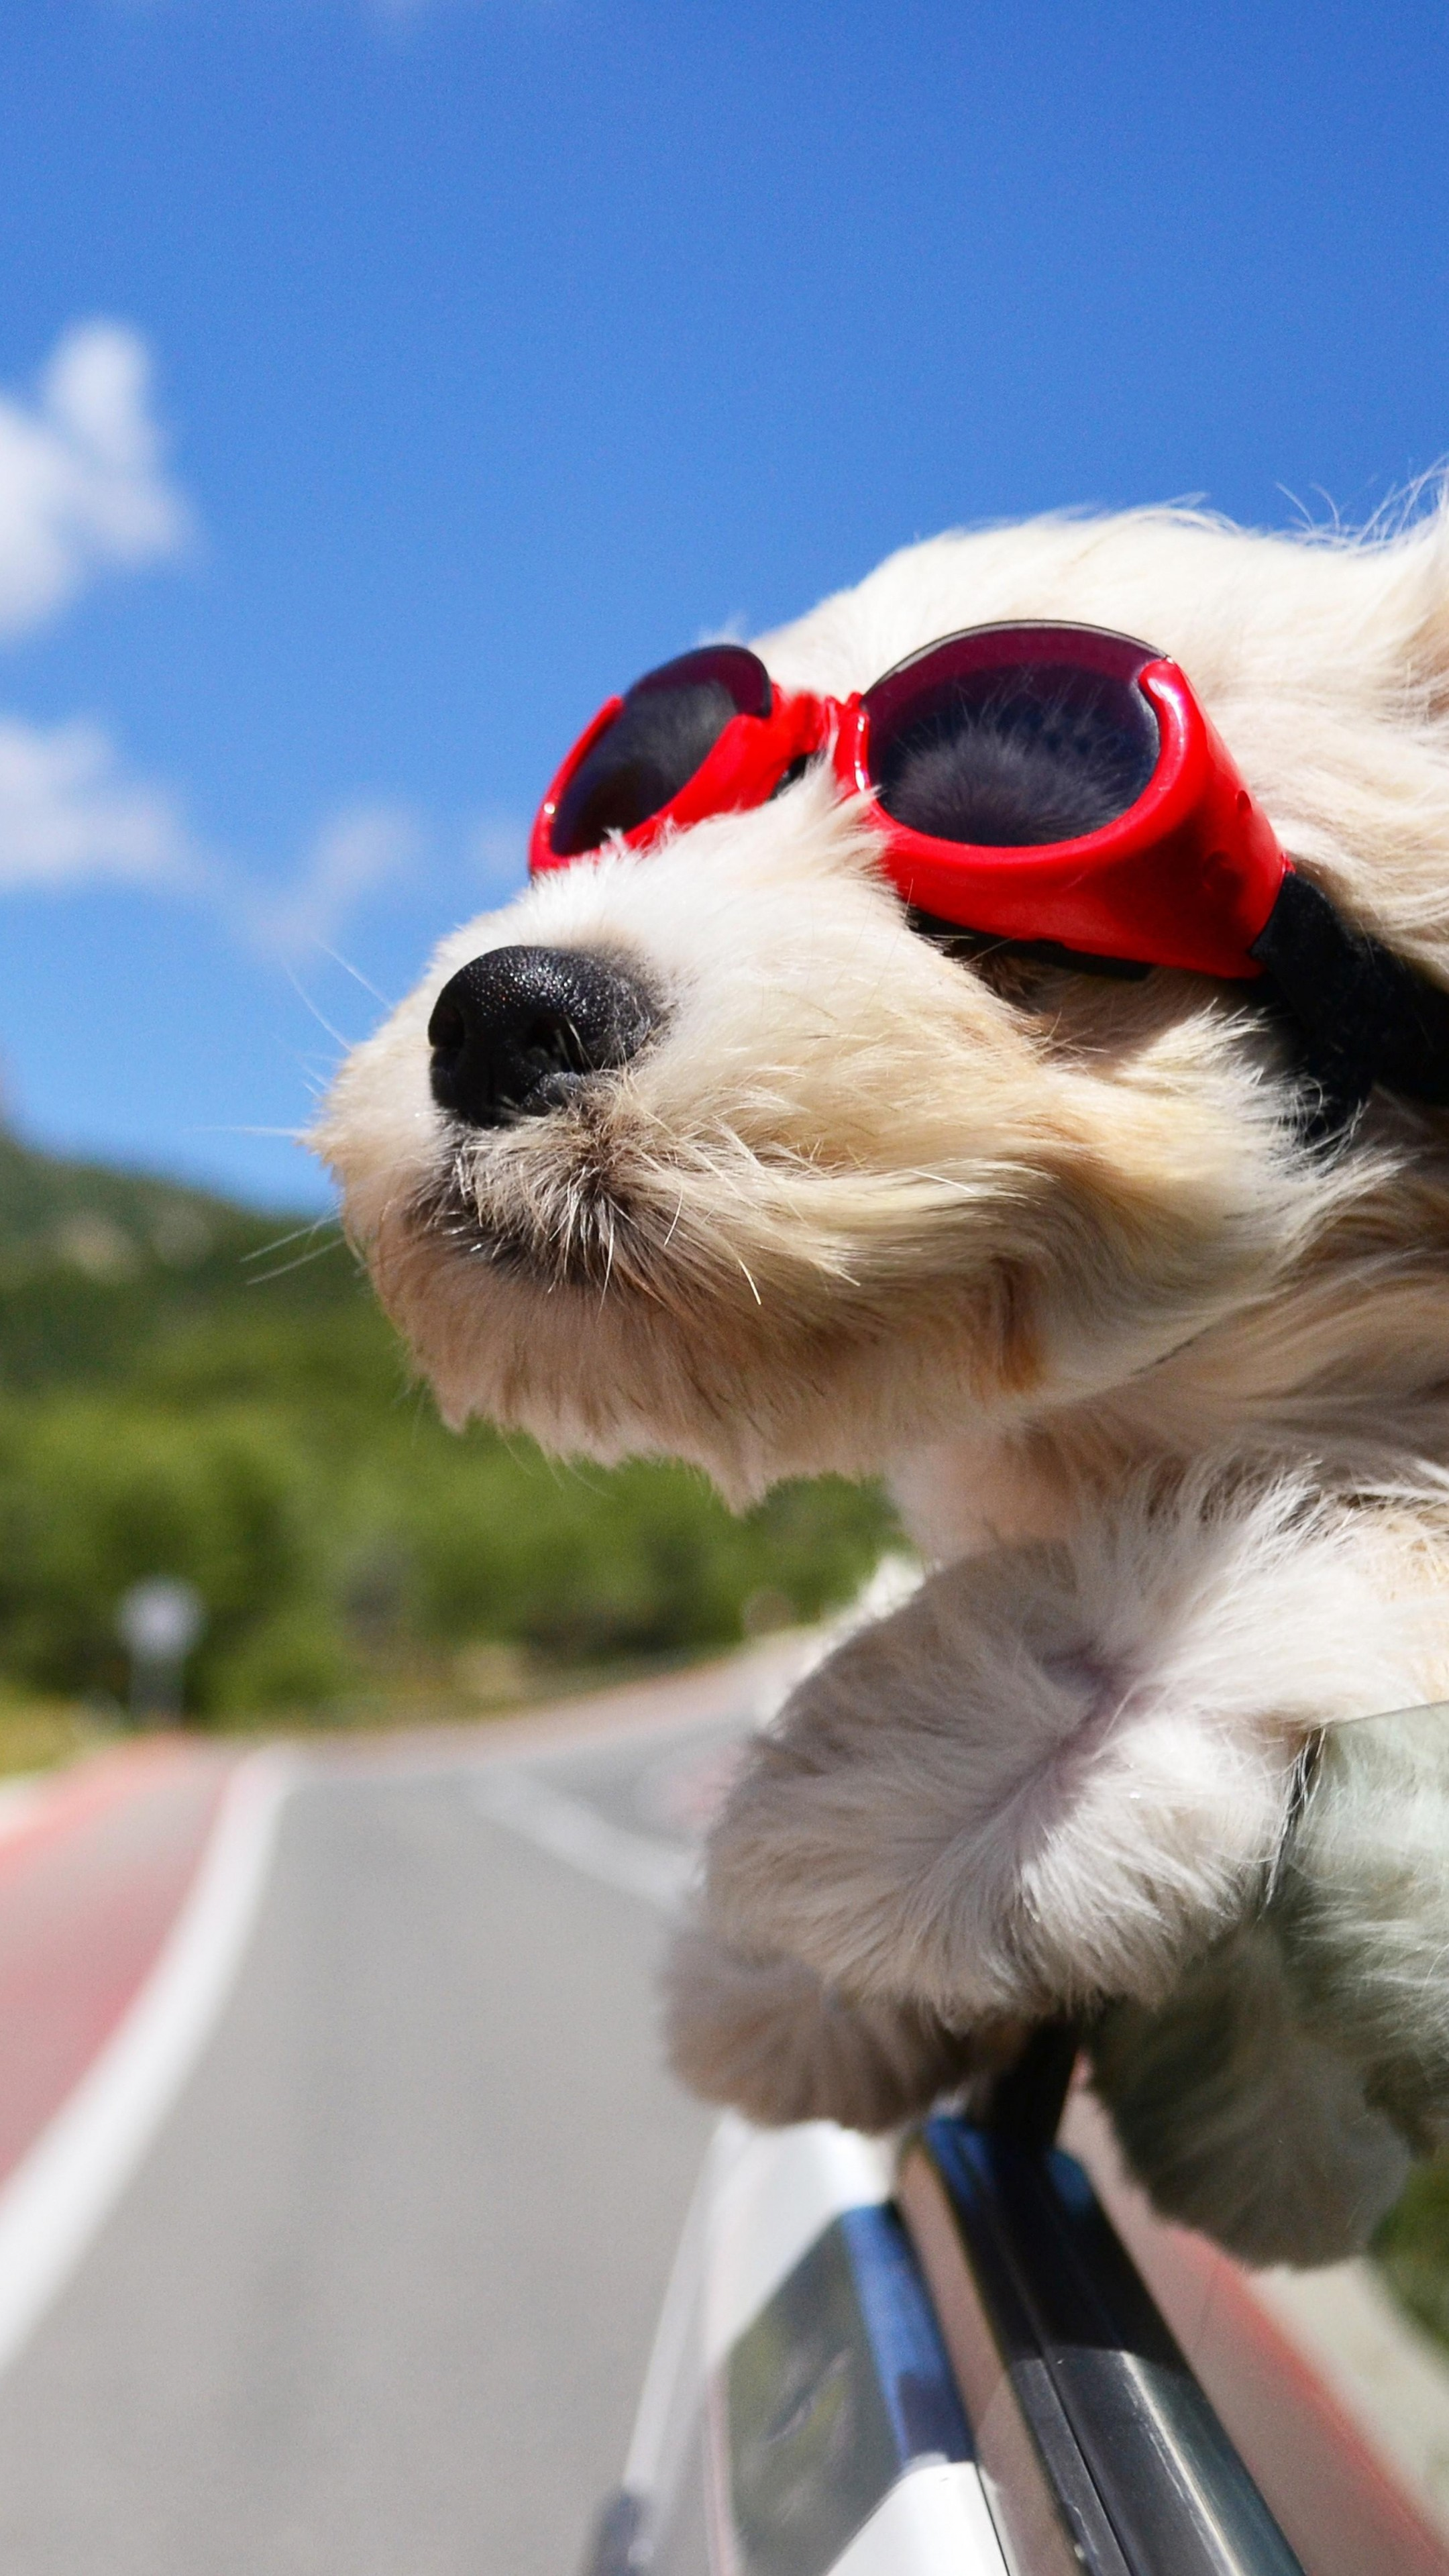 Wallpapers Of Cool Girls Wallpaper Dog Puppy Road Funny Glasses Hair Sky